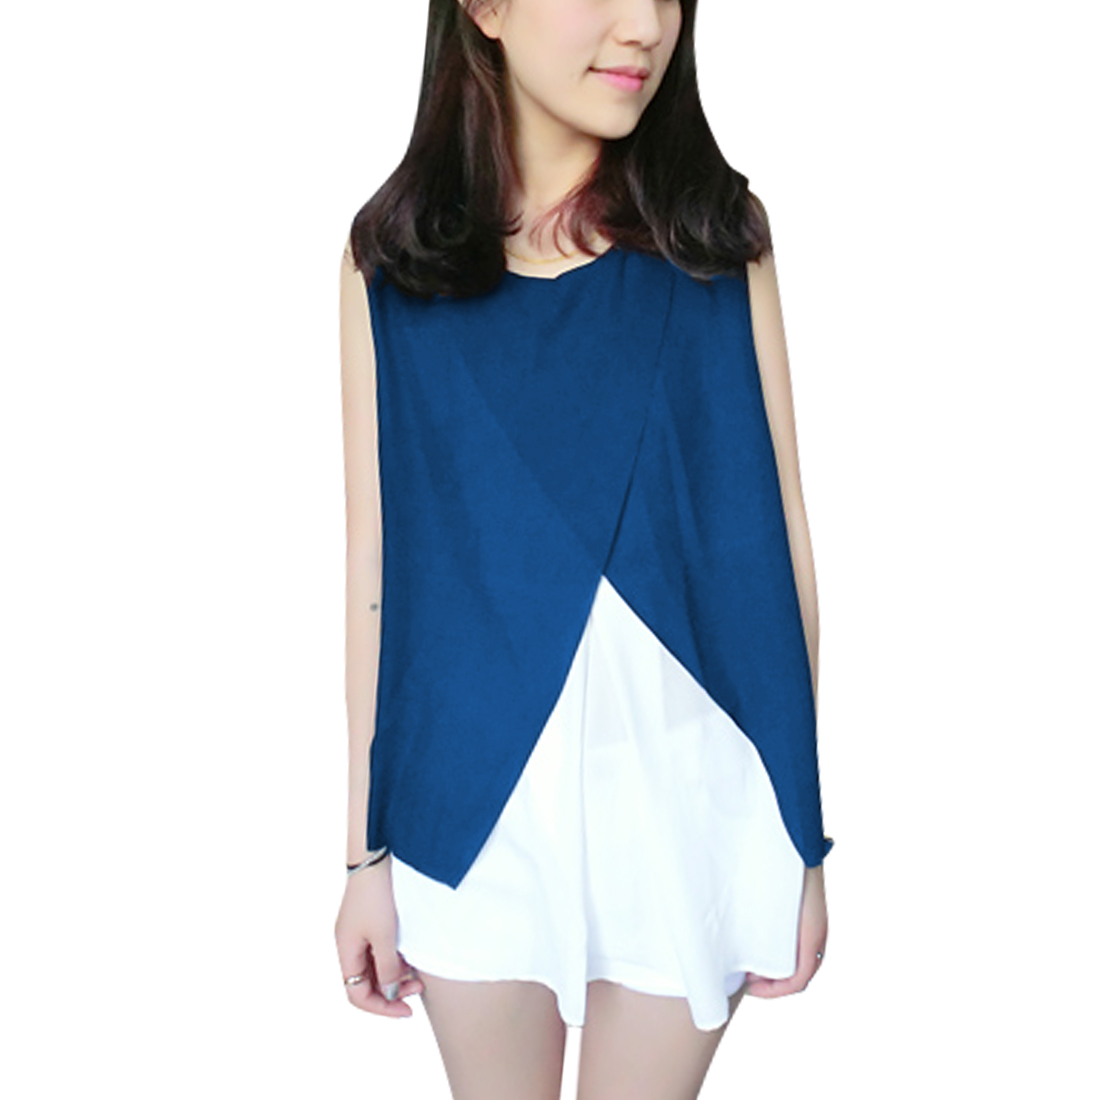 Laides Round Neck Sleeveless Top Shirt Royal Blue White S